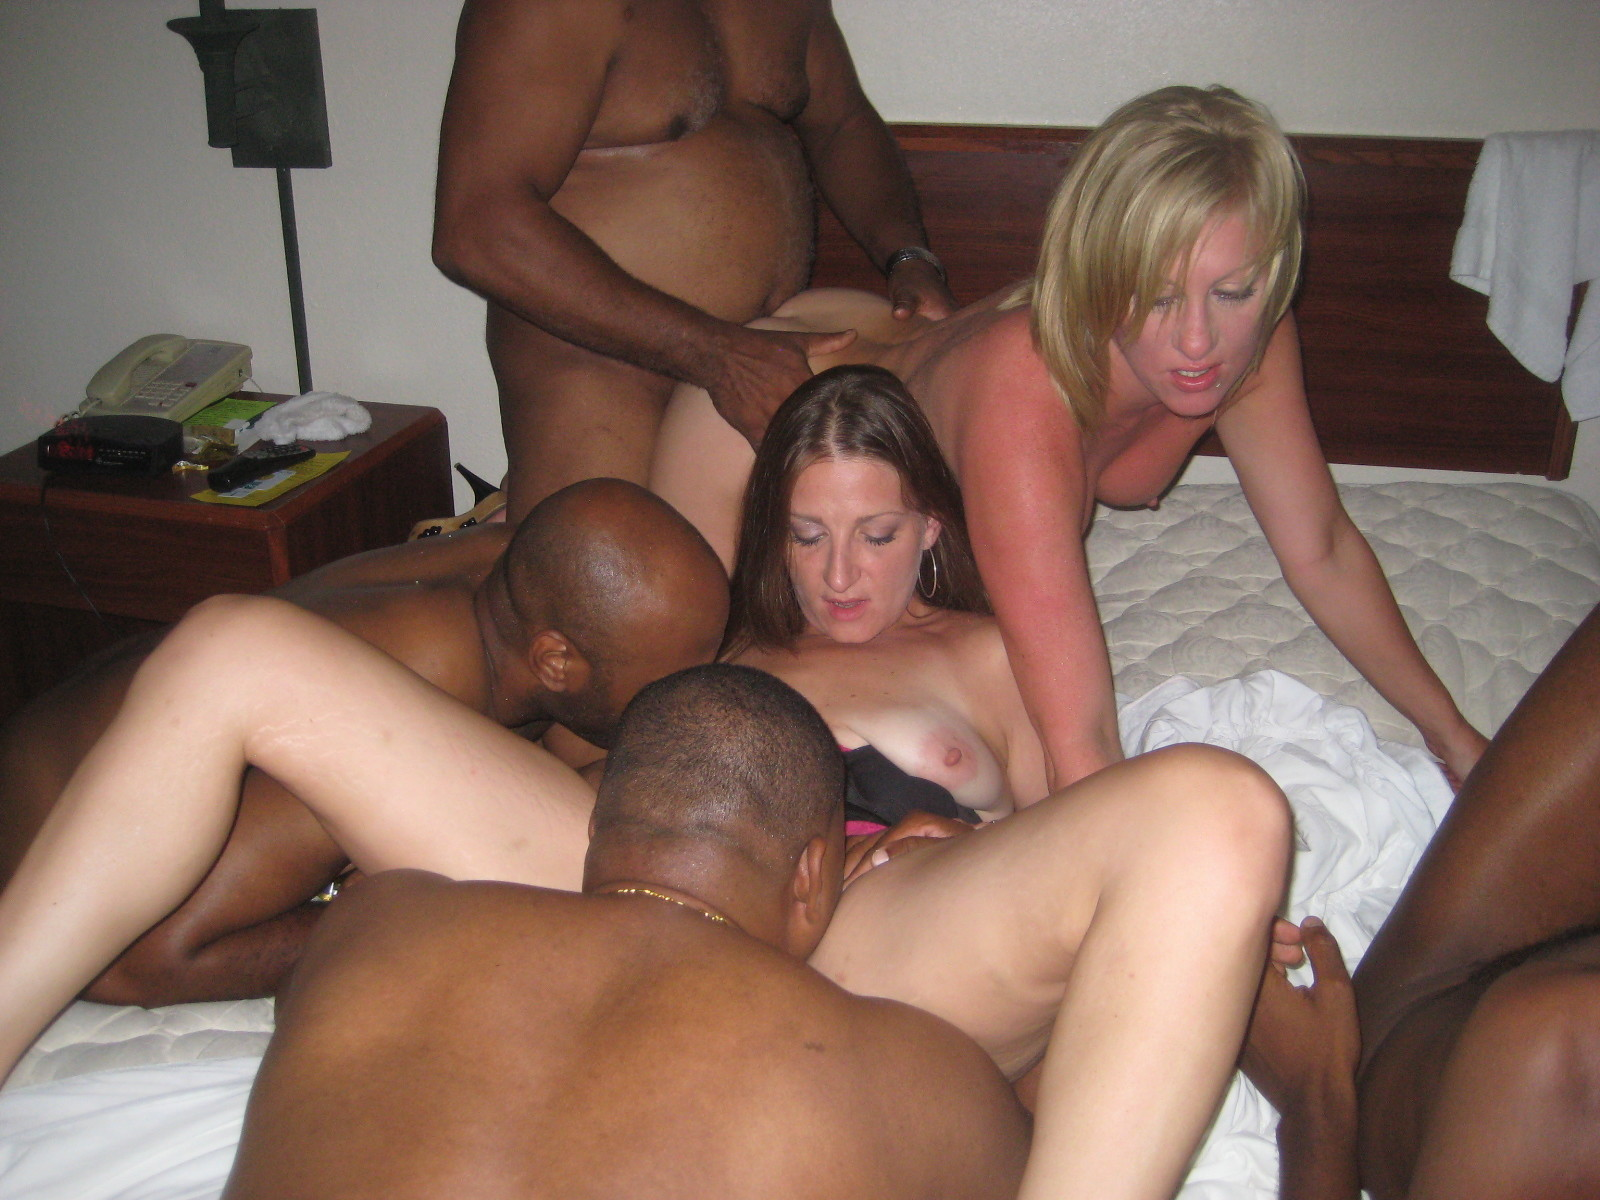 Orgy interracial amateur cuckold humiliation minsissytanner